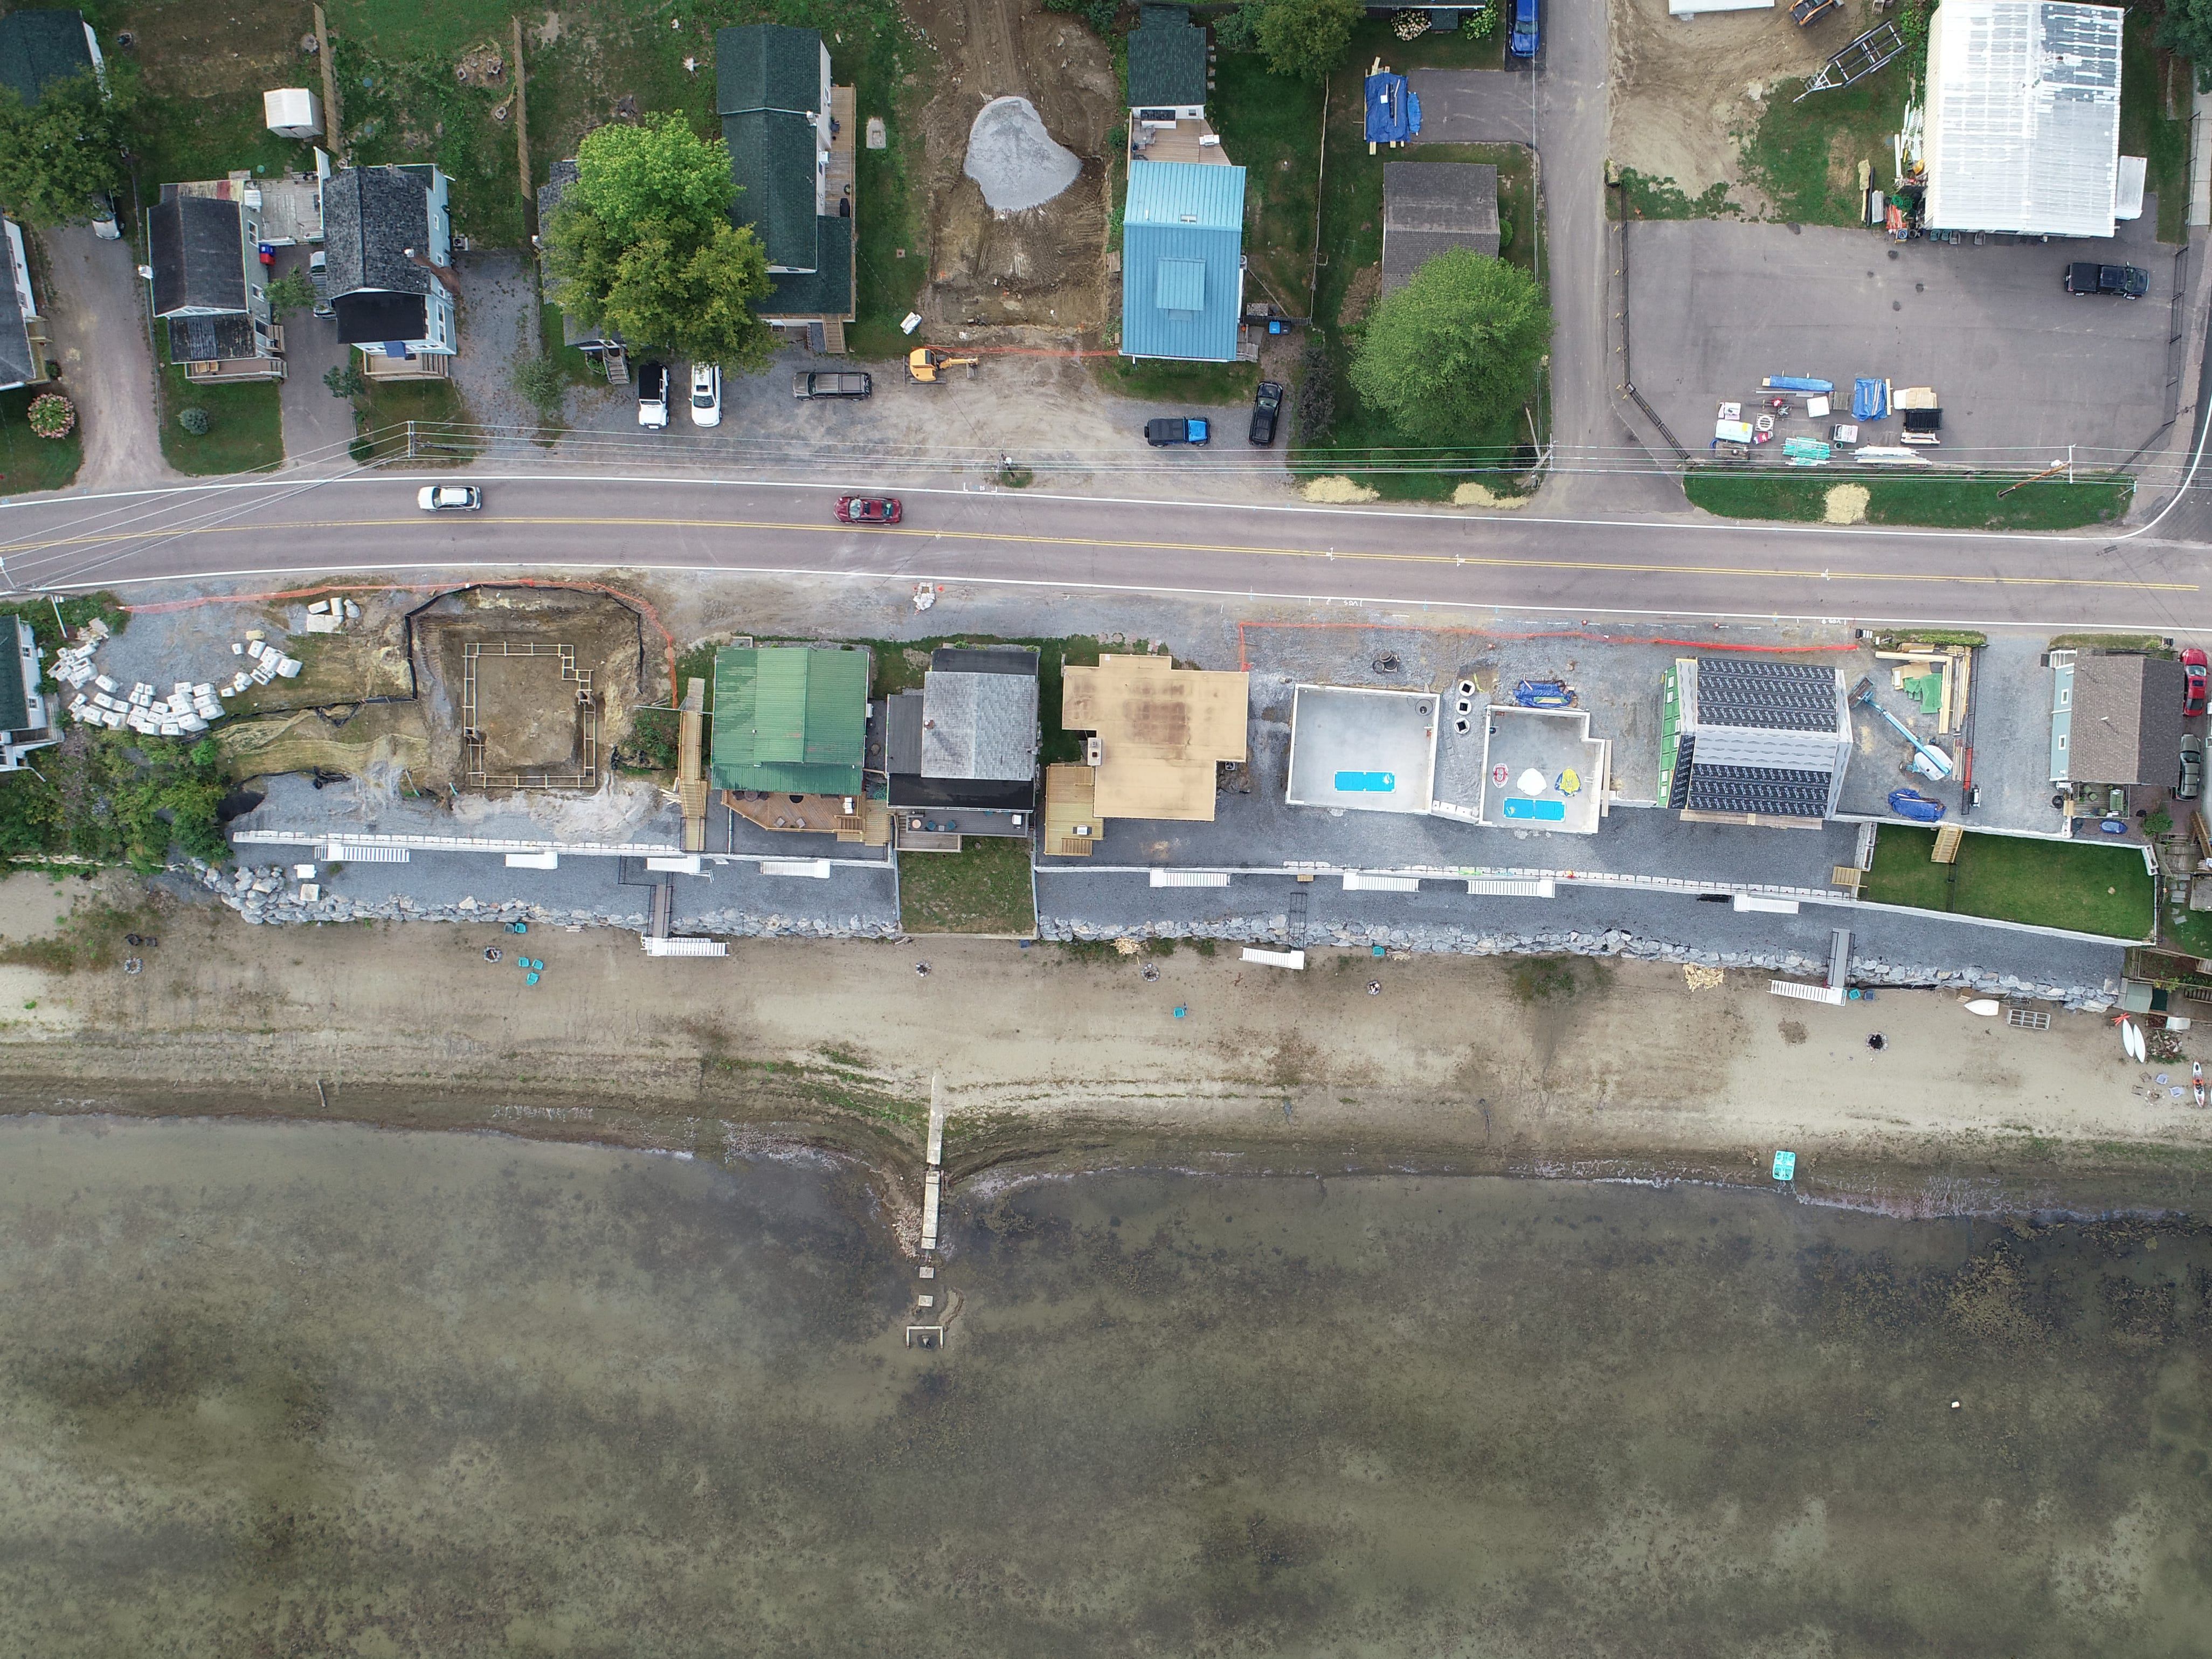 An aerial (drone) view of construction of a seawall and new homes on East Lakeshore Drive in Colchester, photographed Sept. 15, 2018.